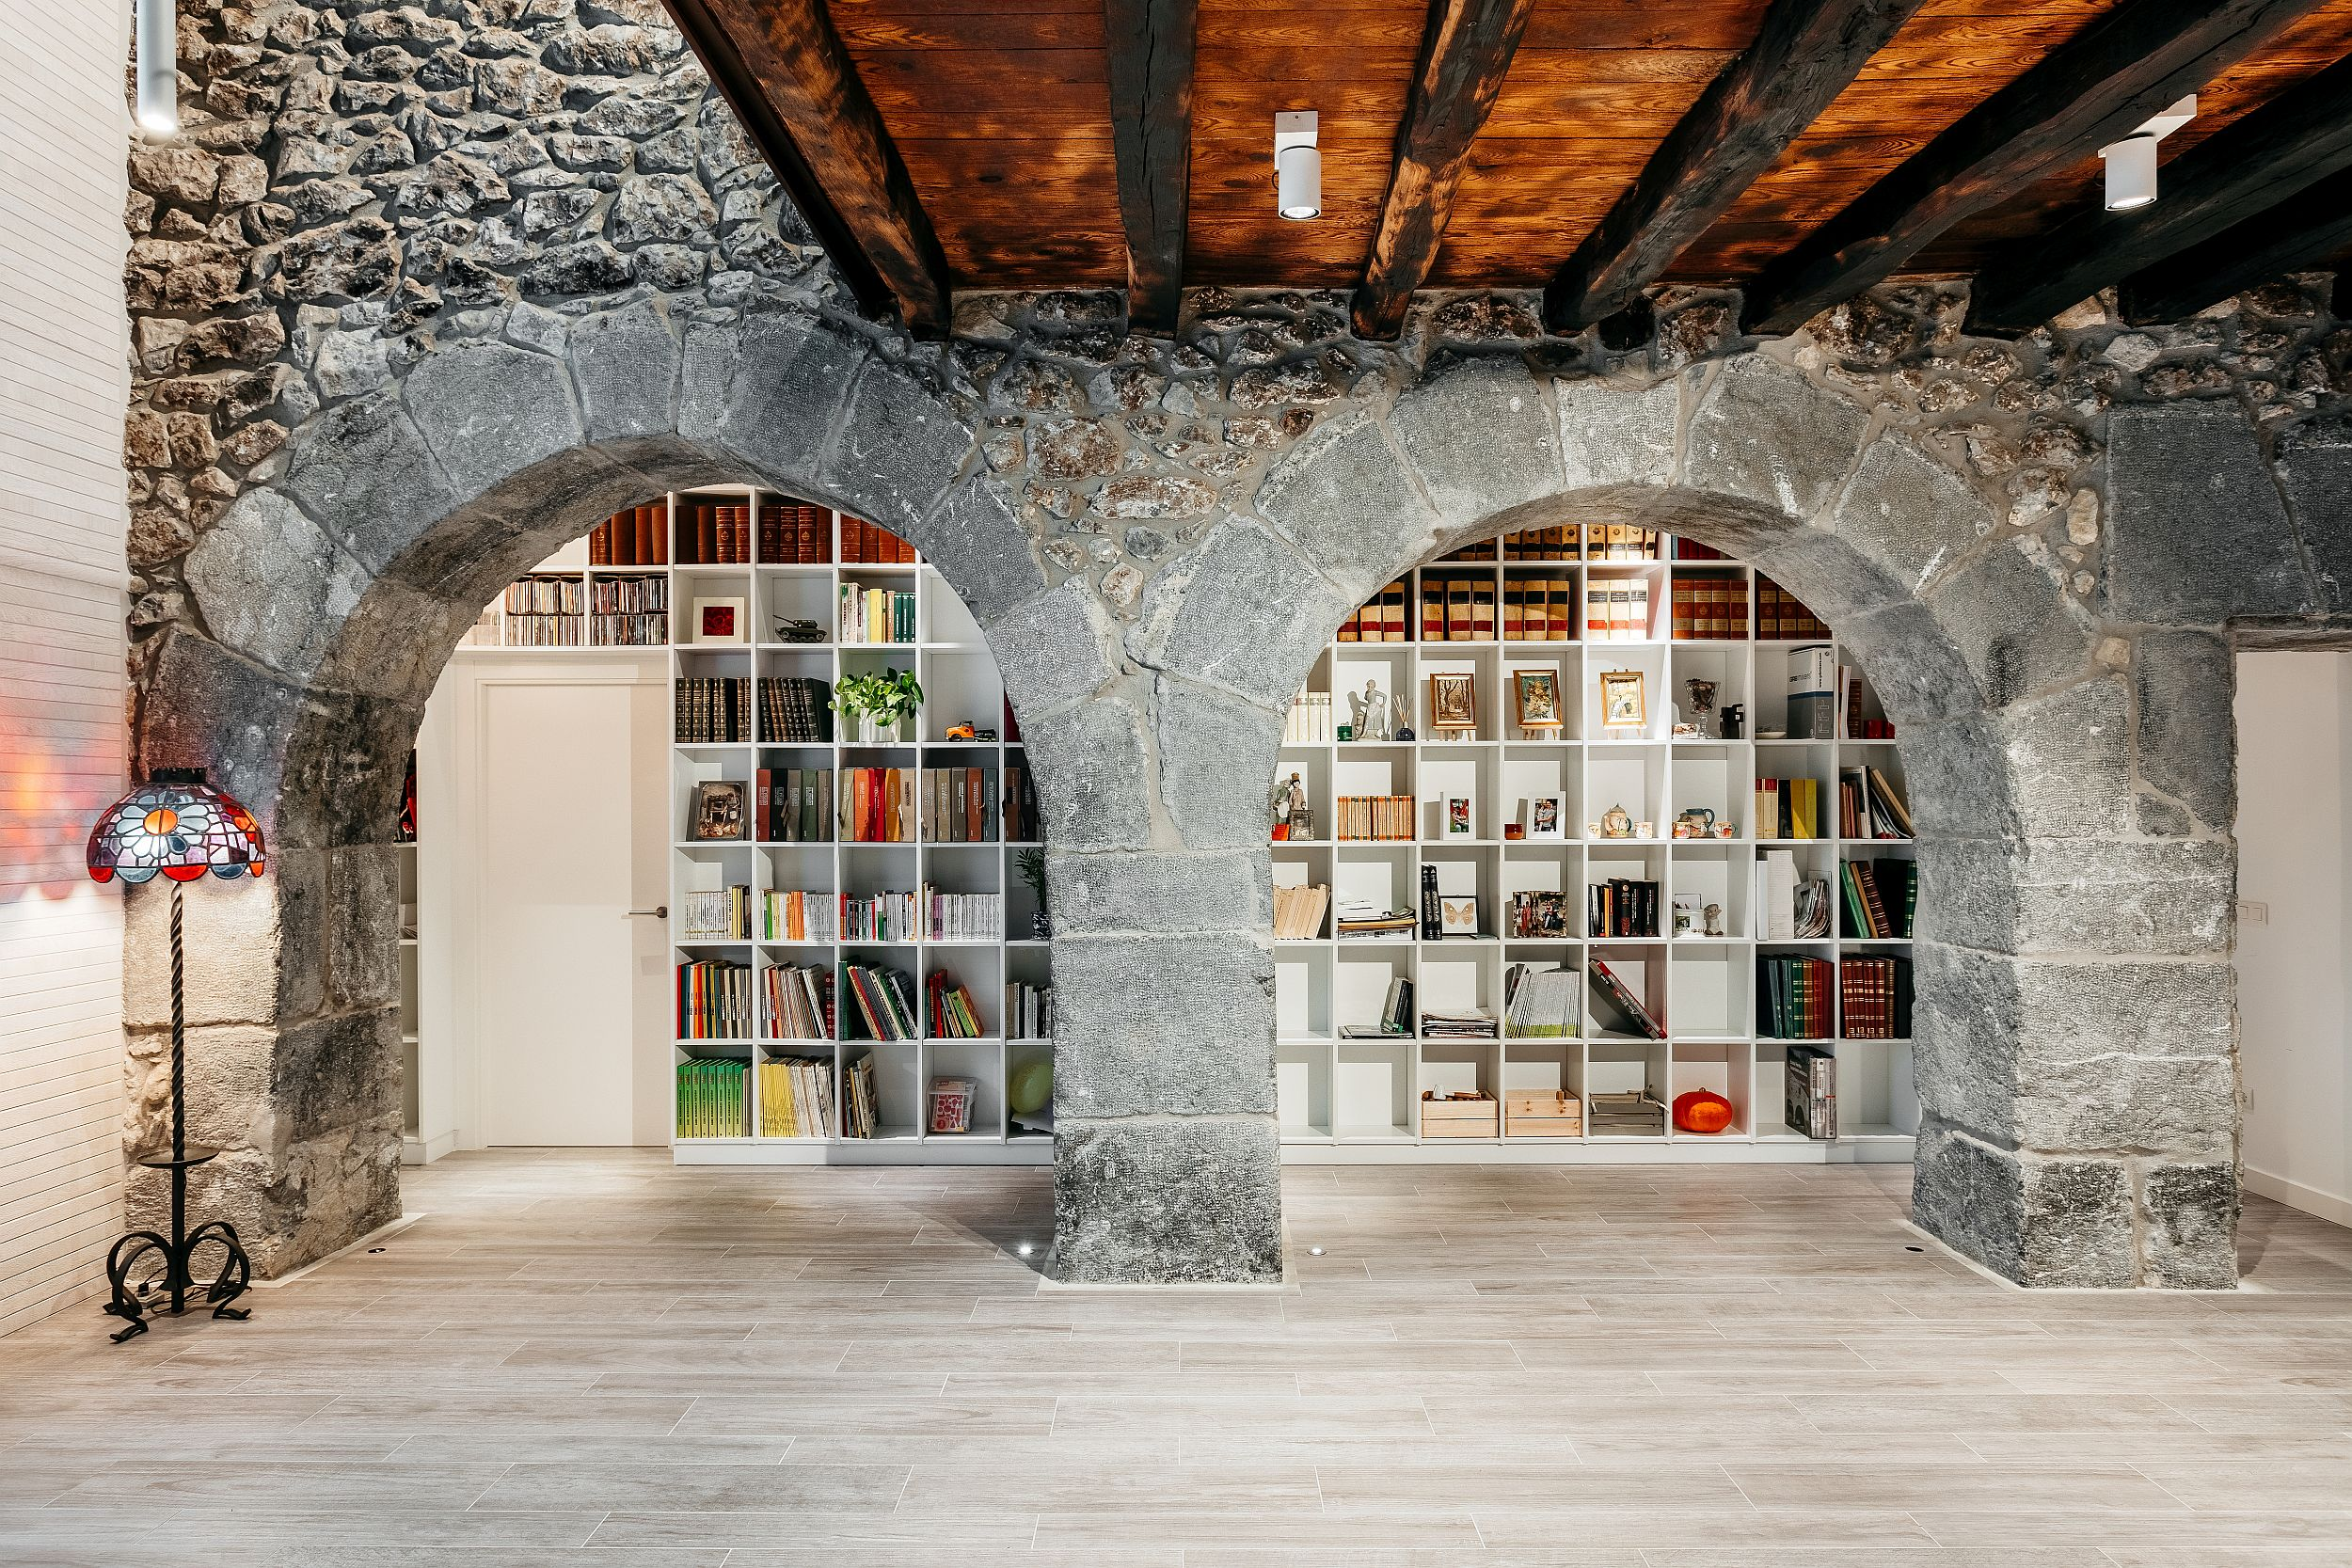 Historic stone walls inside the house combined with modern bookshelves